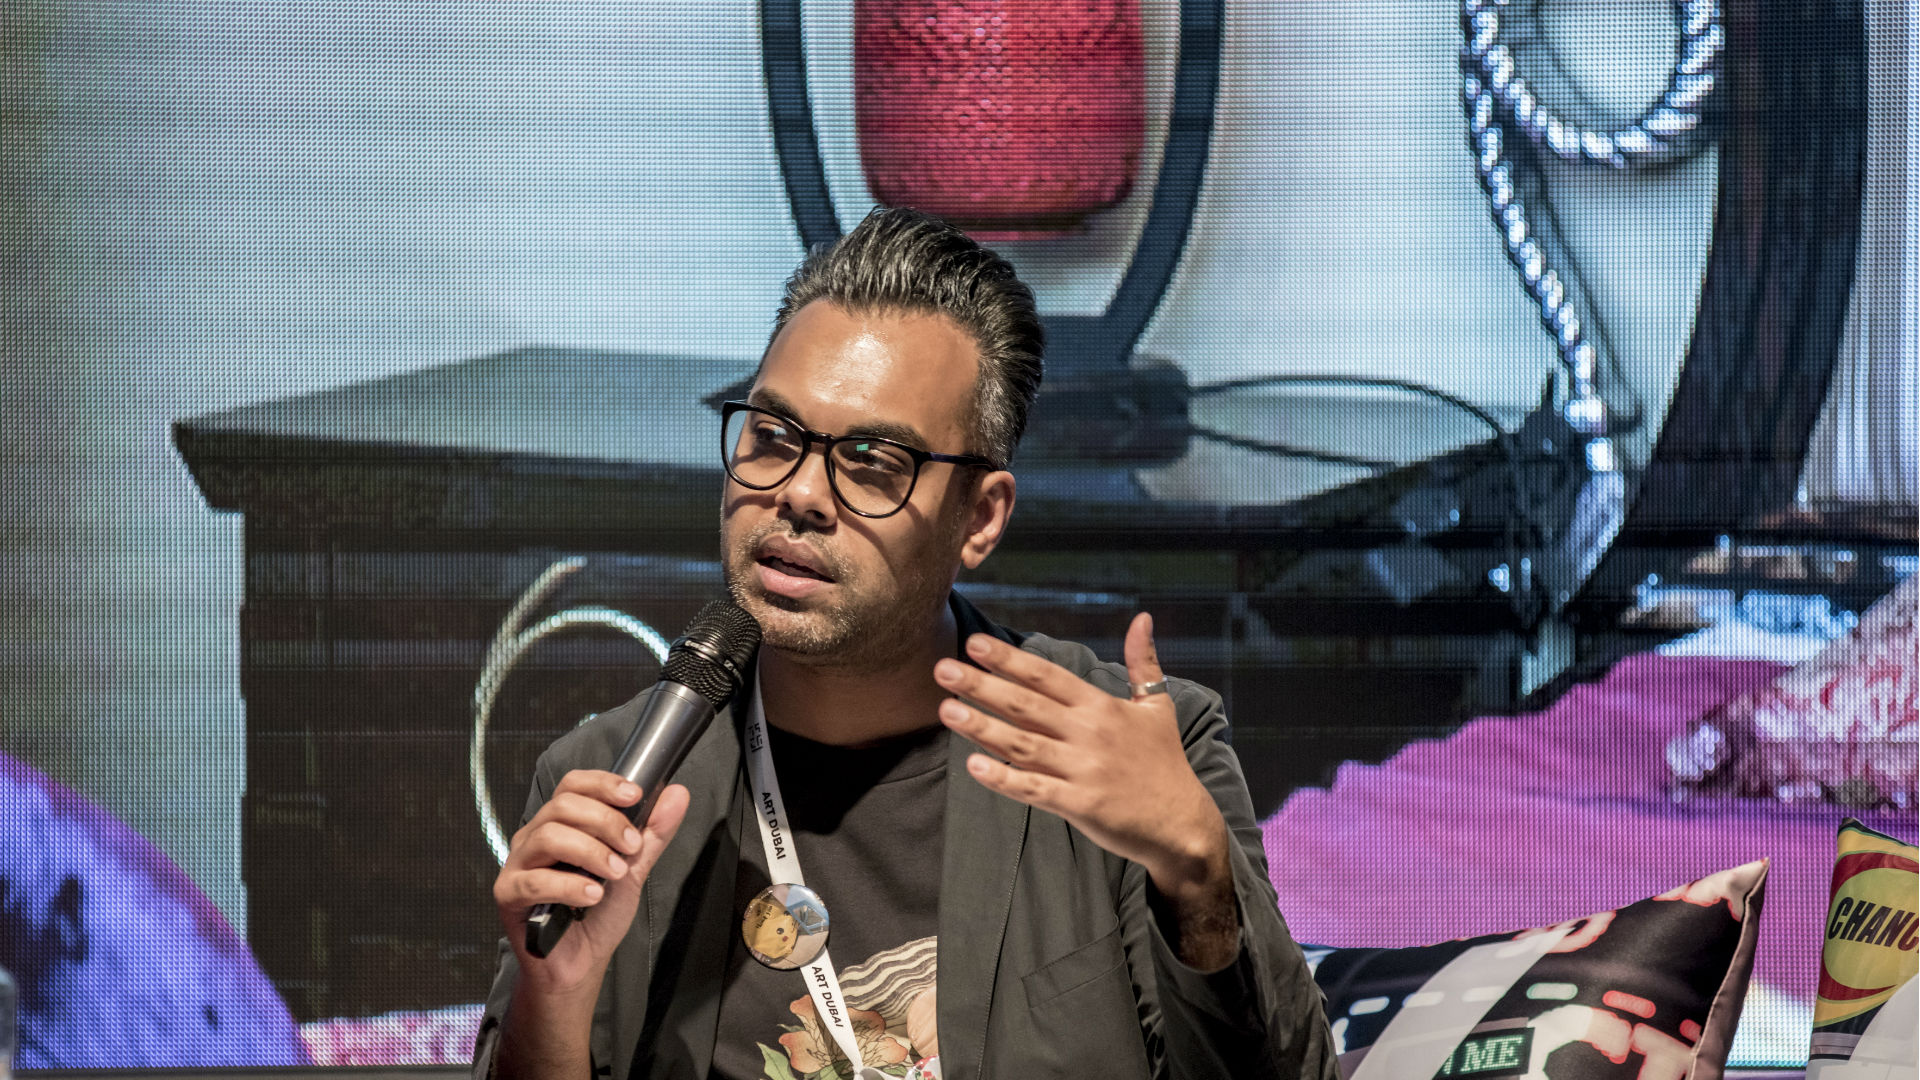 Shumon Basar at Global Art Forum 'Trading Places'. Art Dubai 2017. Courtesy of Photo Solutions.